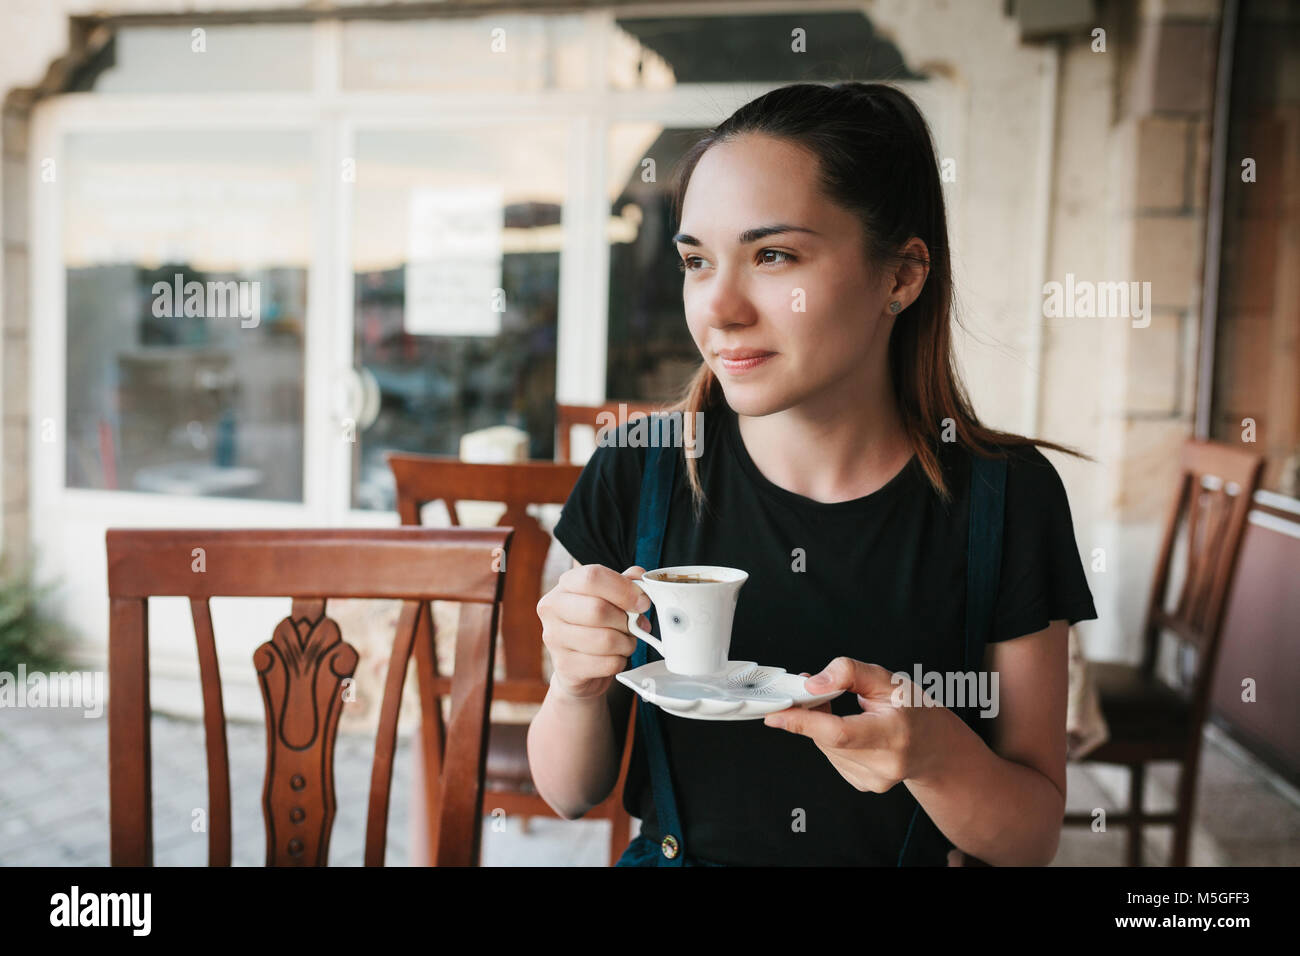 Beautiful woman drinking coffee at the cafe - Stock Image